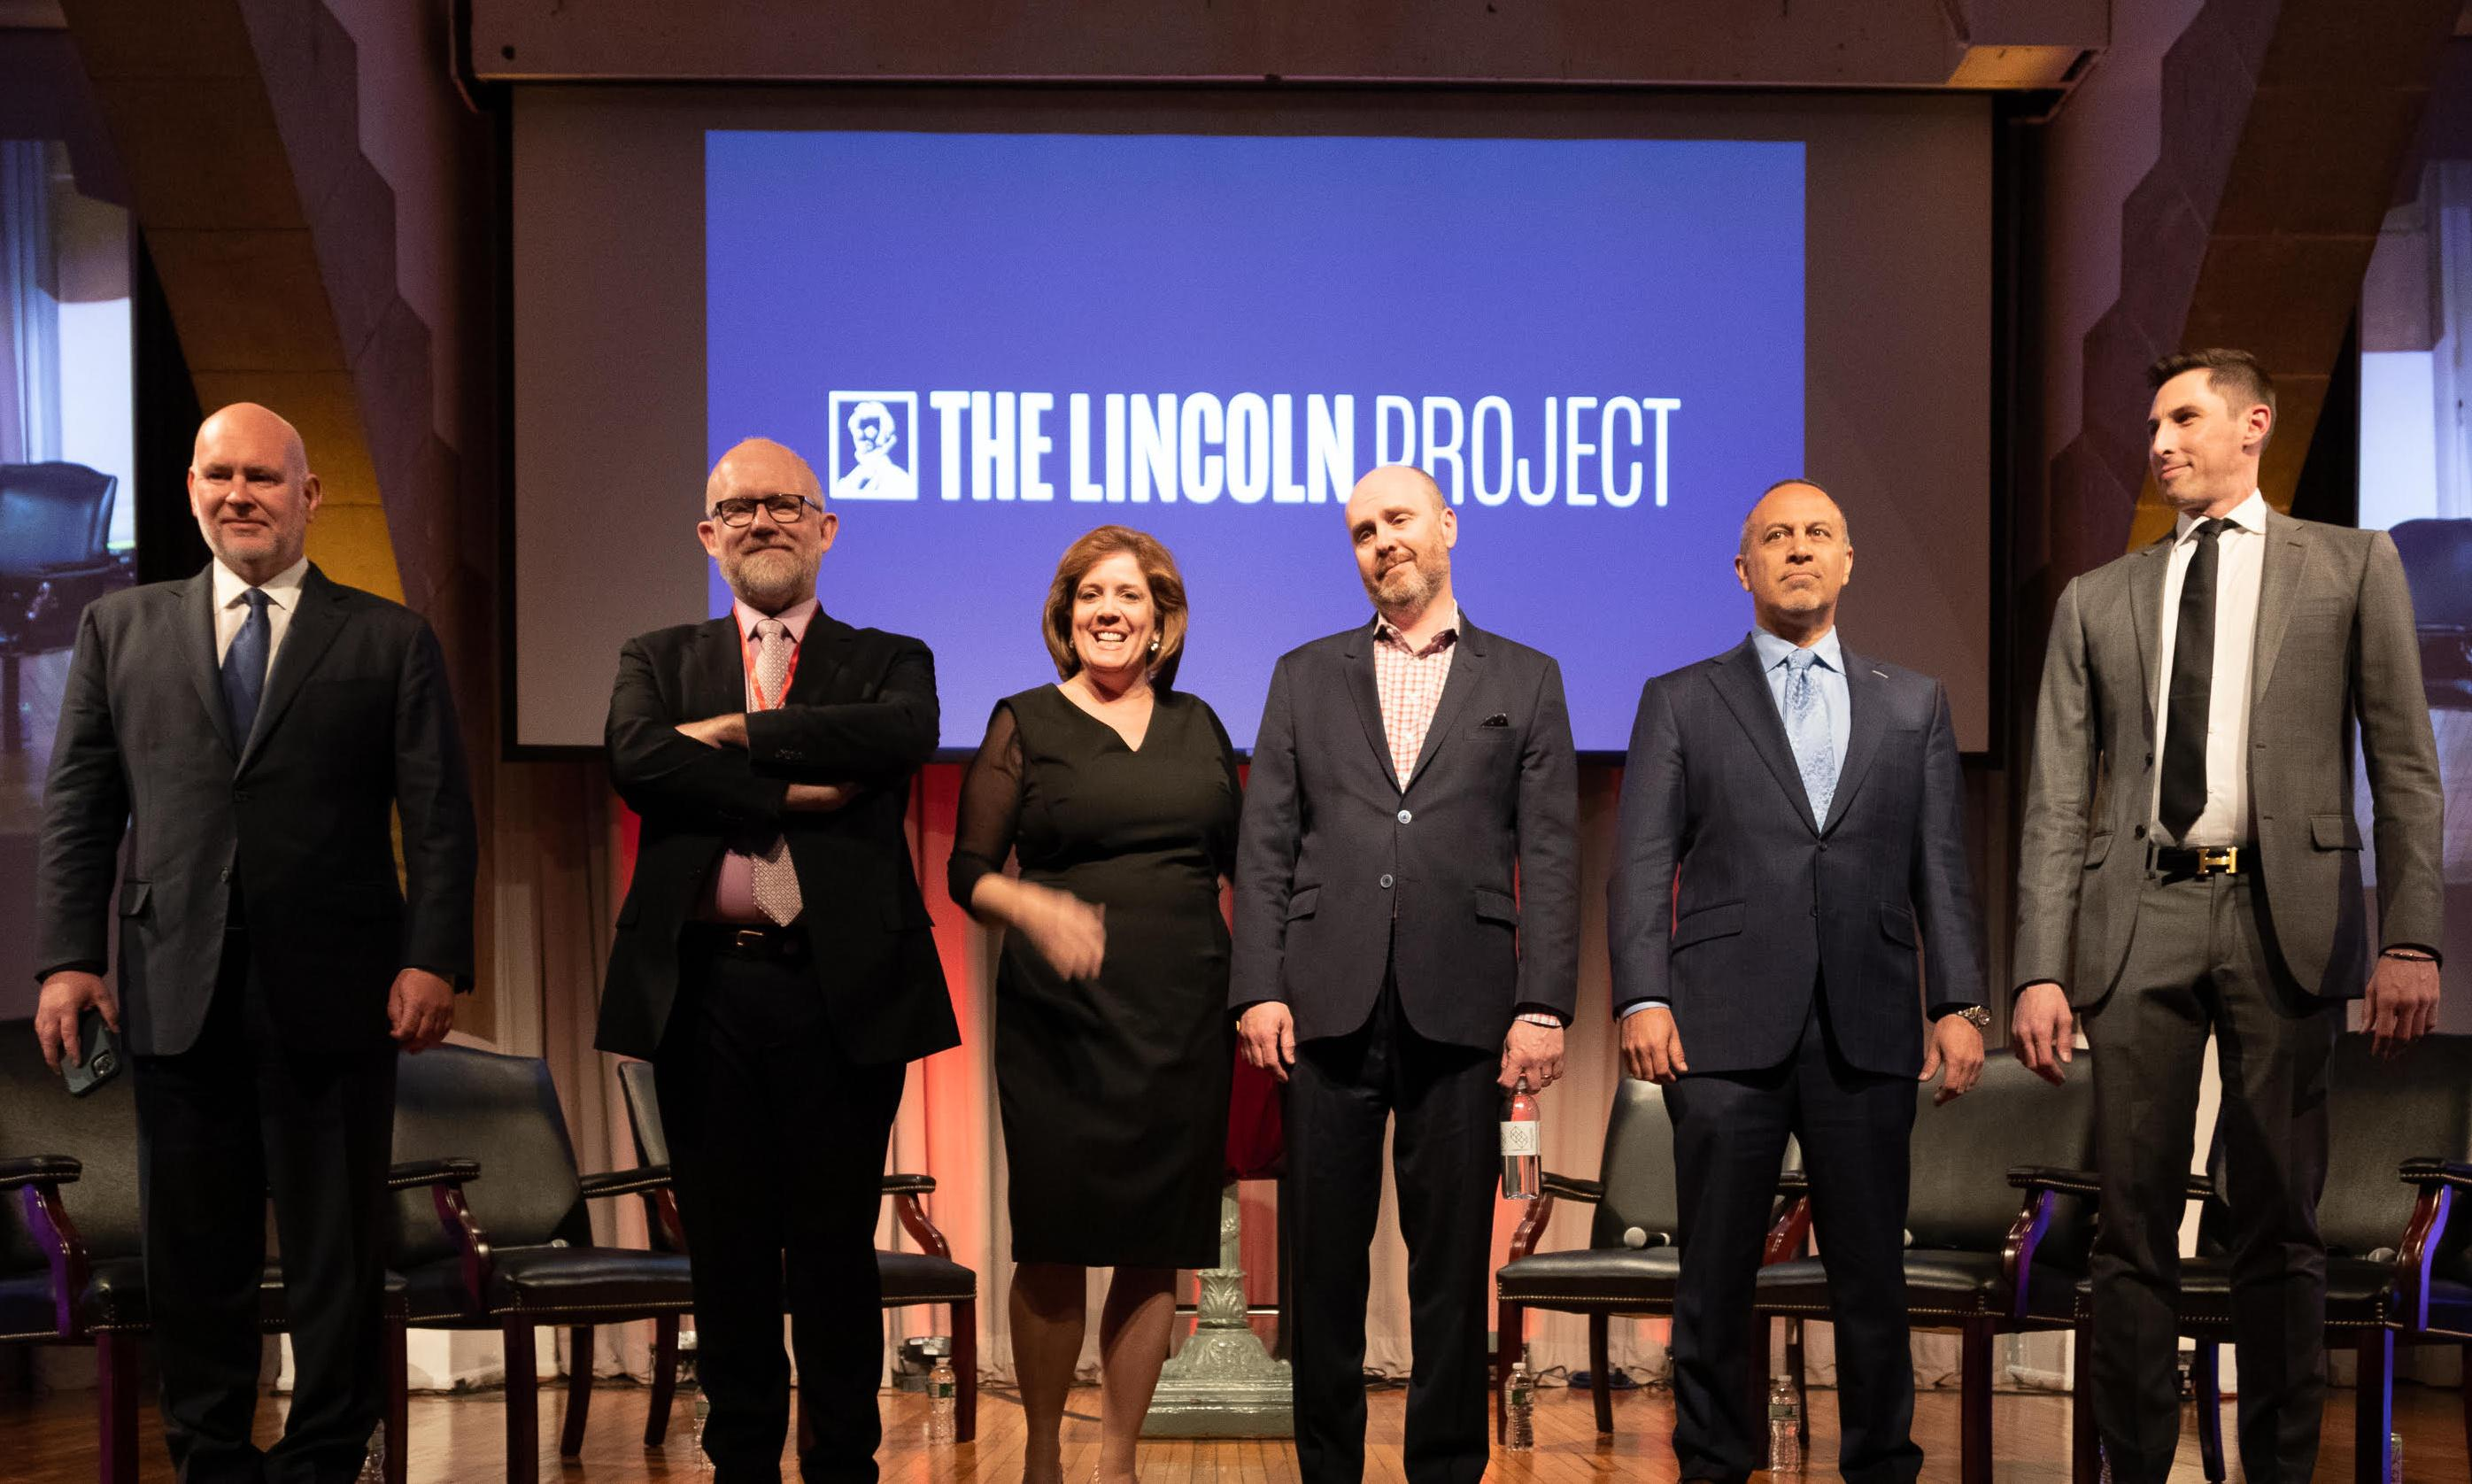 'Right makes might': Lincoln Project takes aim at Trump from Cooper Union